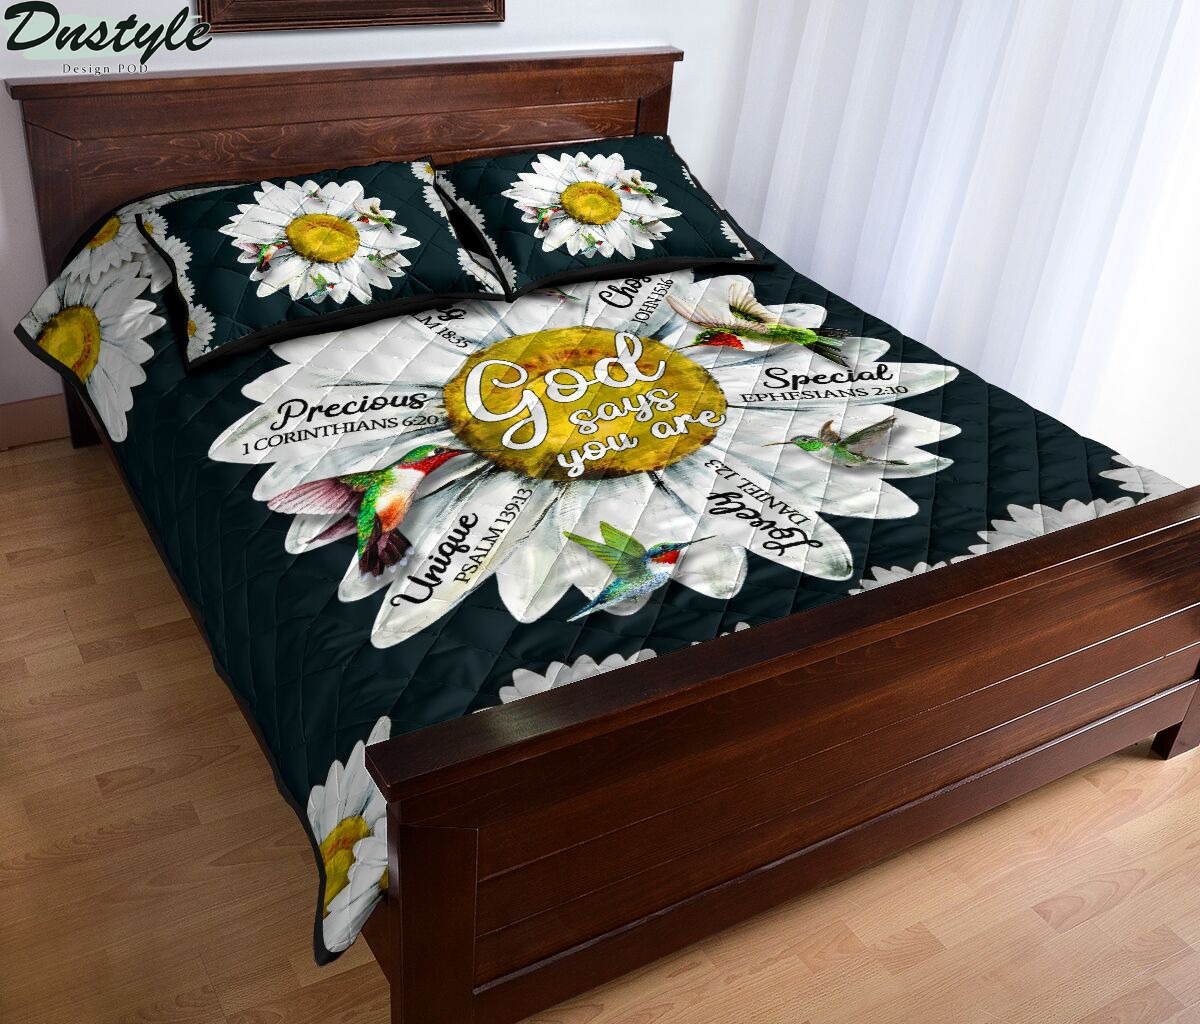 Hummingbird daisy god says you are quilt bed set 2